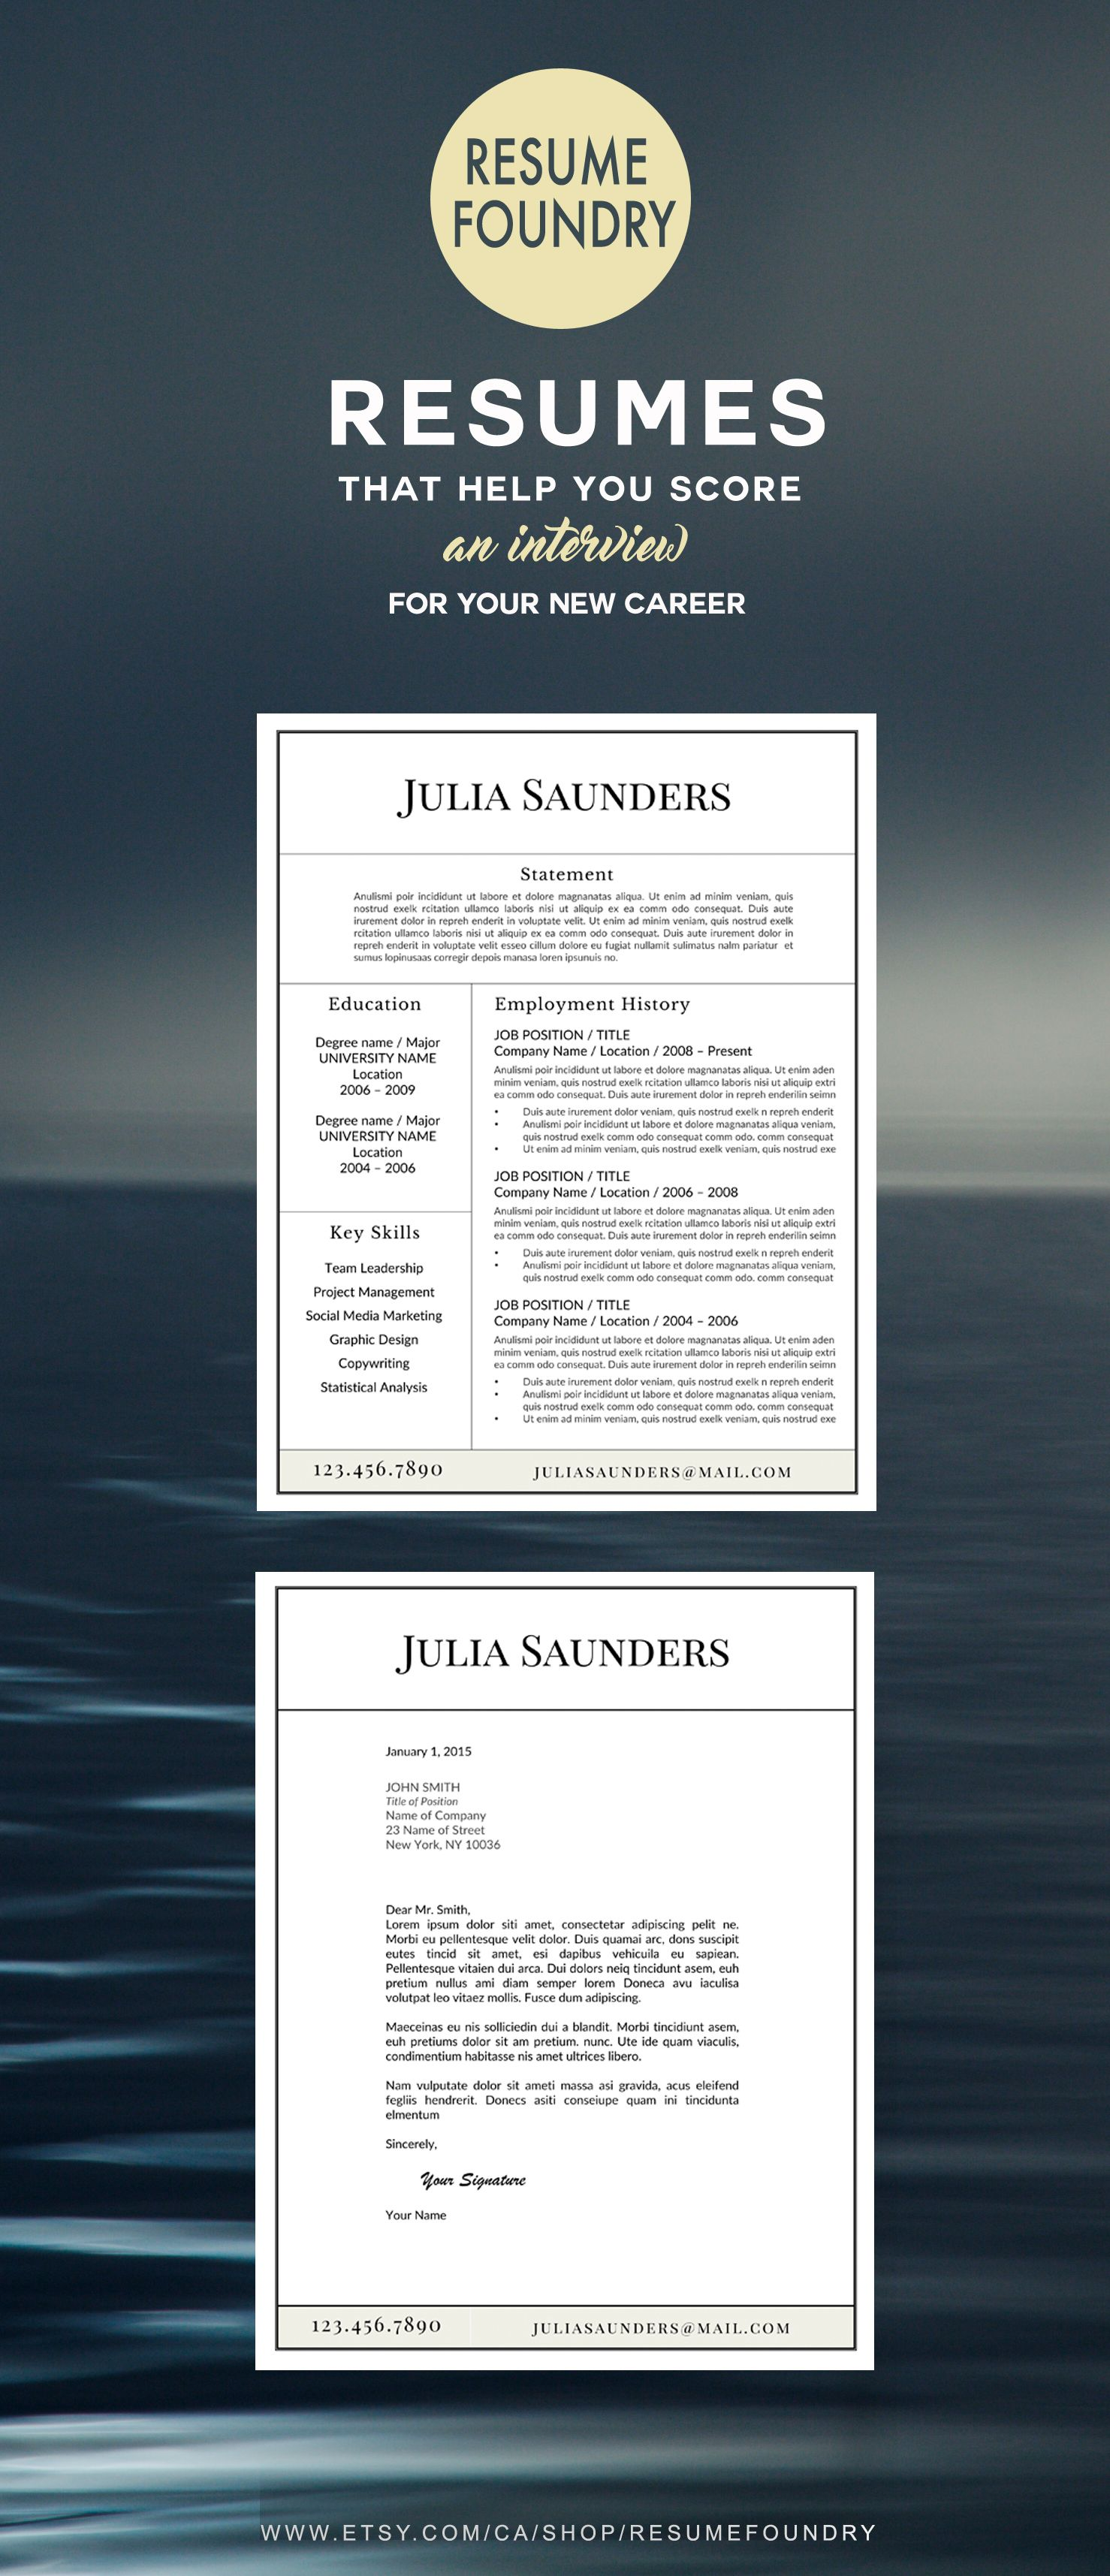 Simple yet stylish resume template ready for